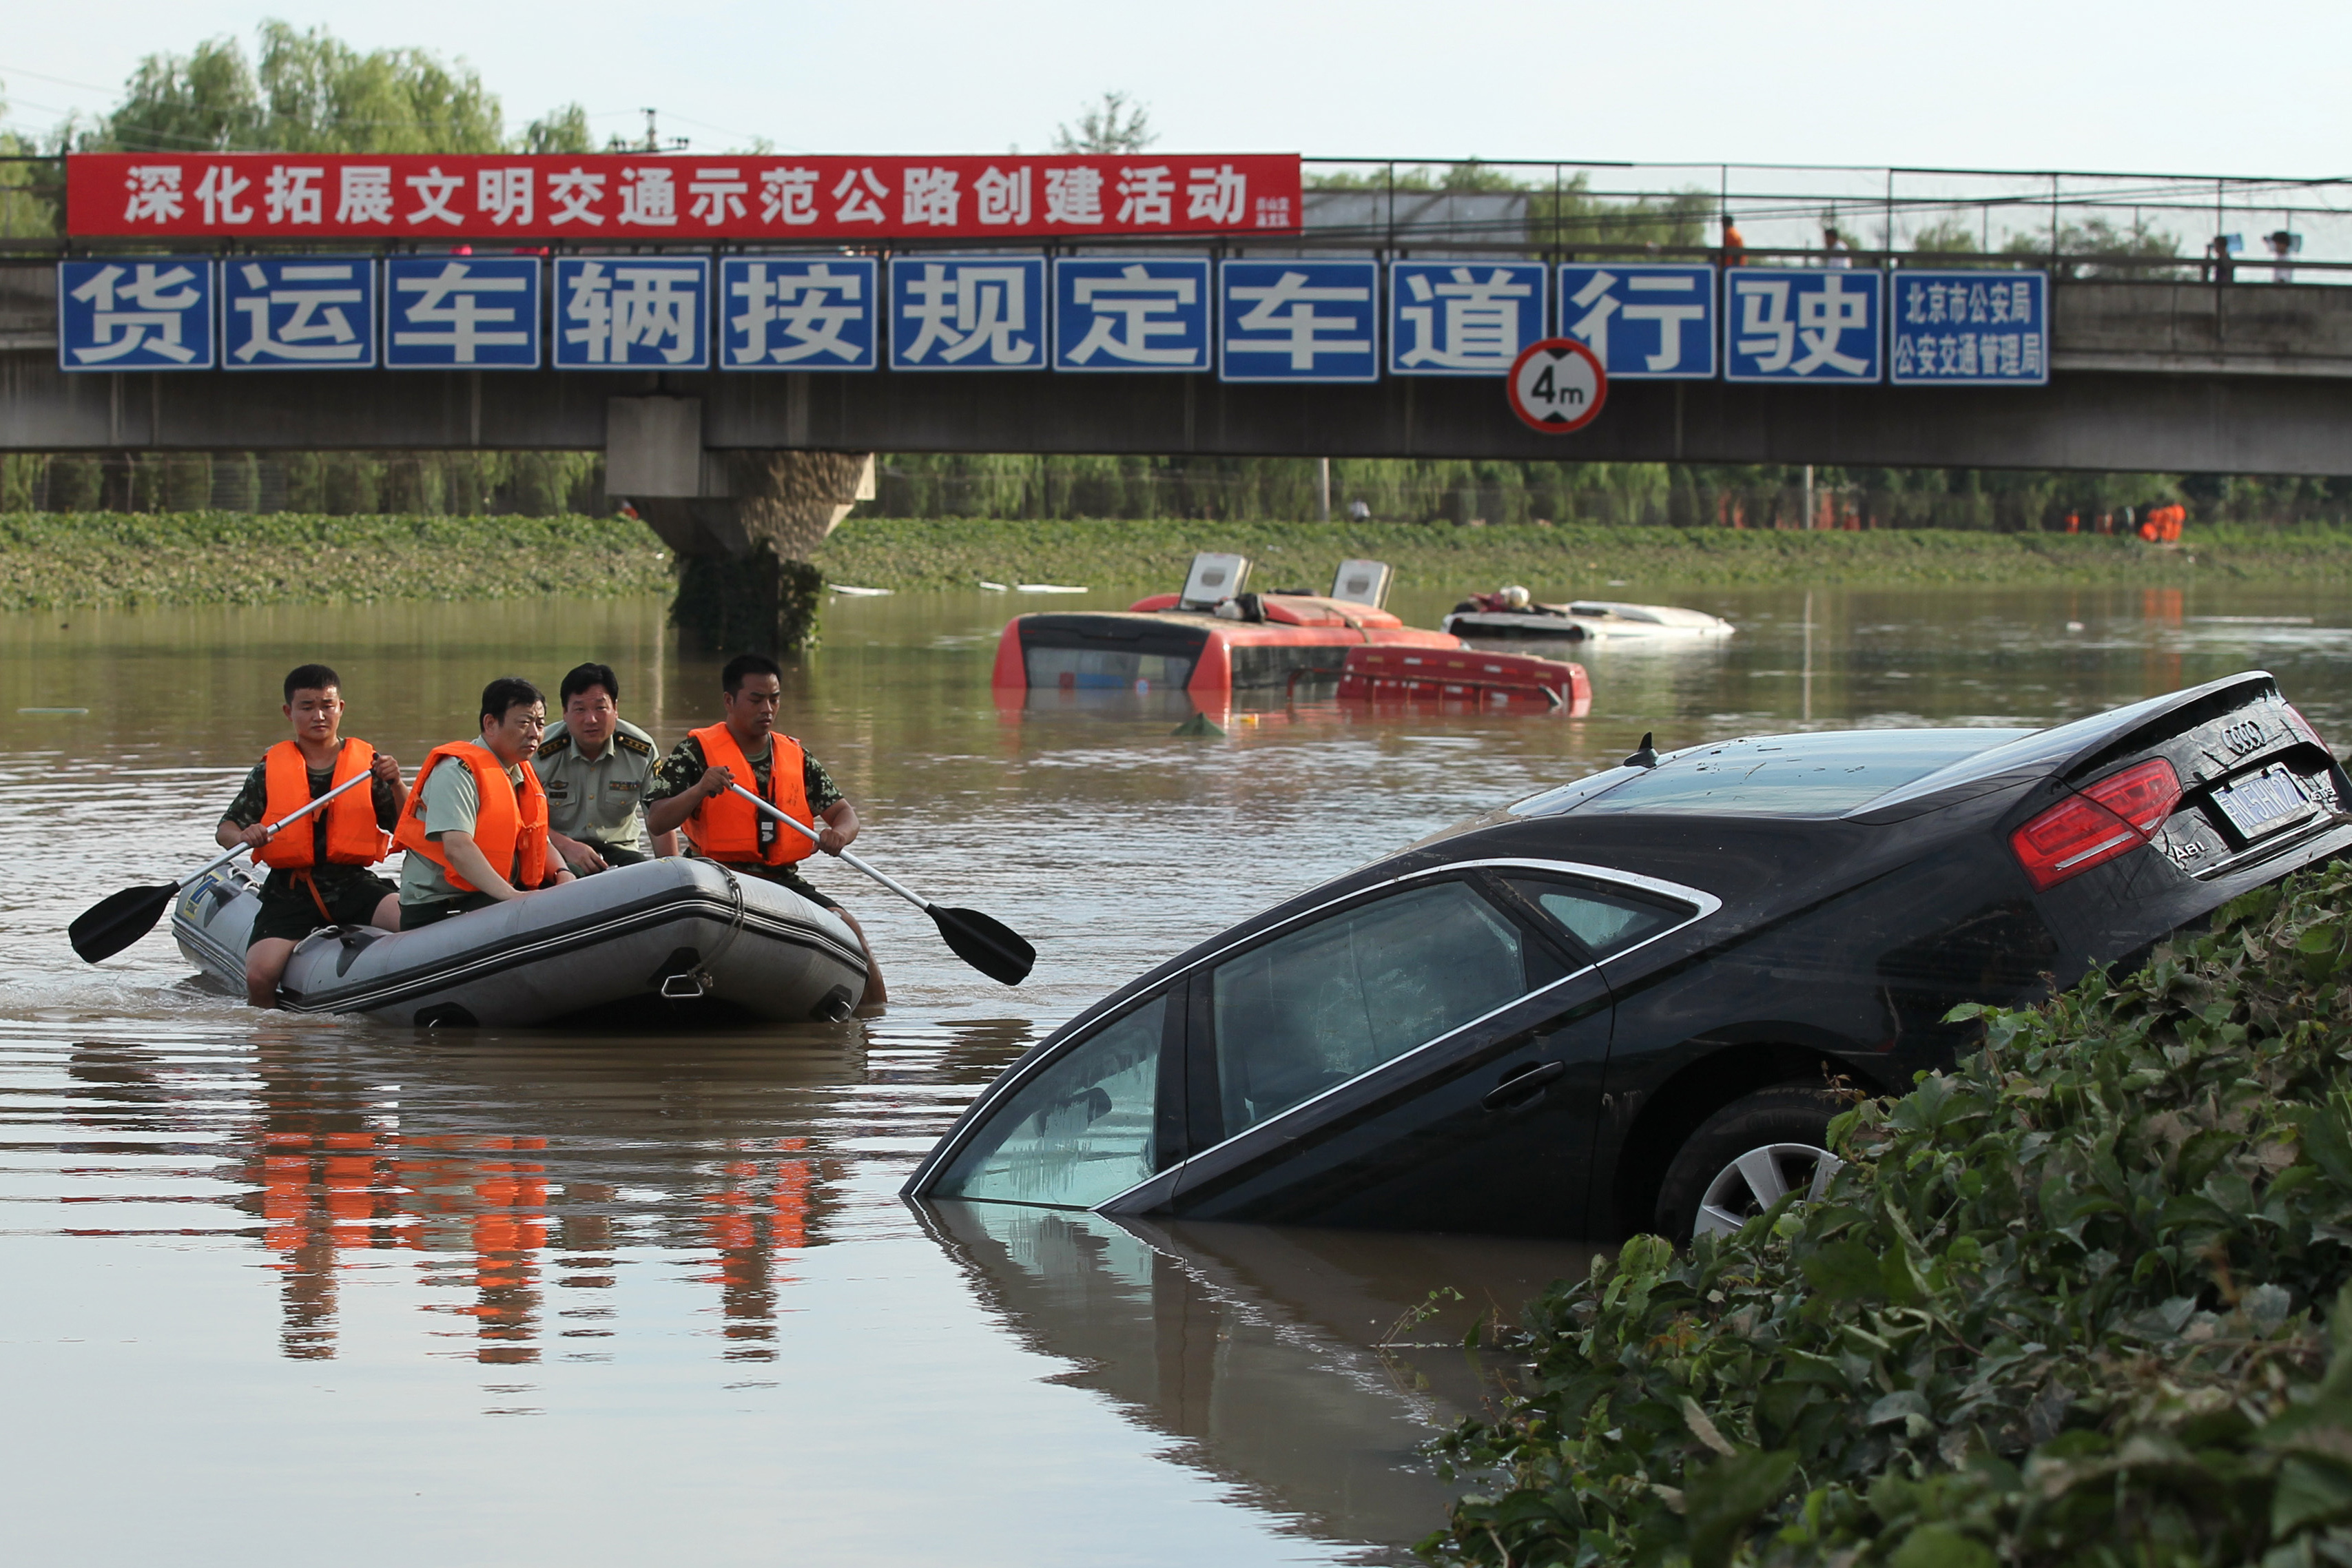 A rescue boat approaches a partially submerged car on a highway in the Fangshan District of Beijing.